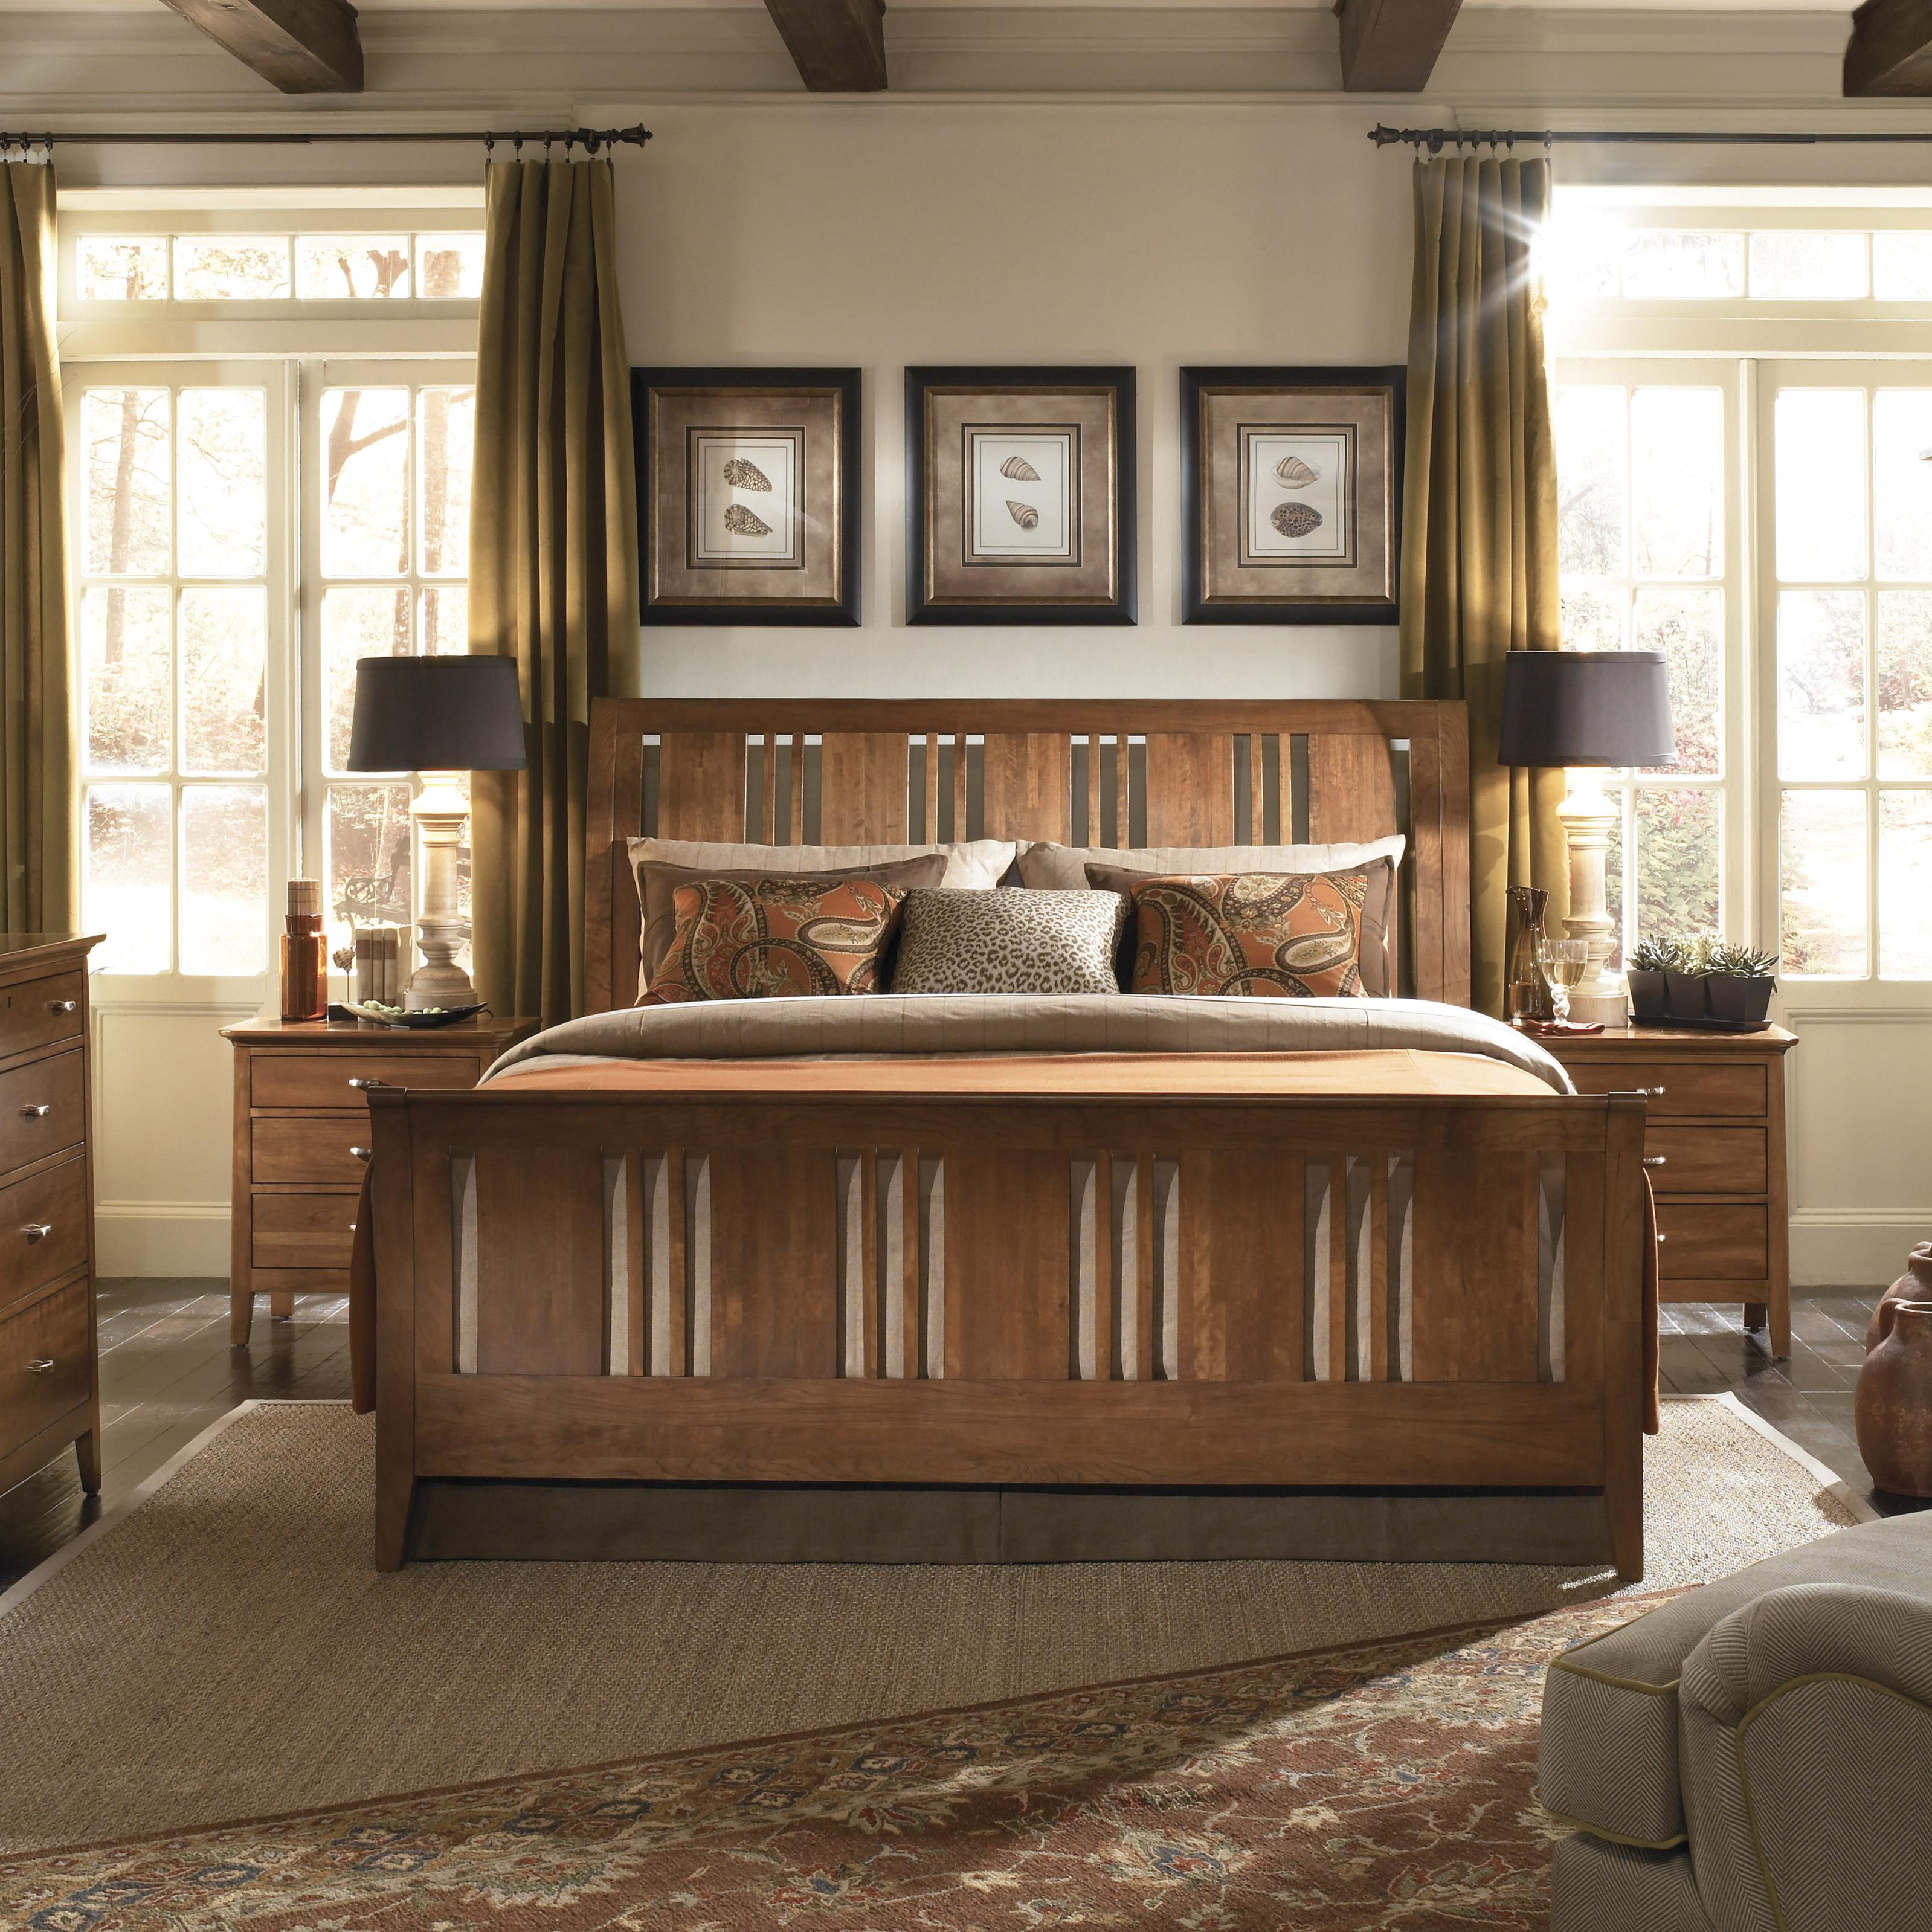 Kincaid Furniture Cherry Park Queen Sleigh Bed - Item Number: 63-150H+F